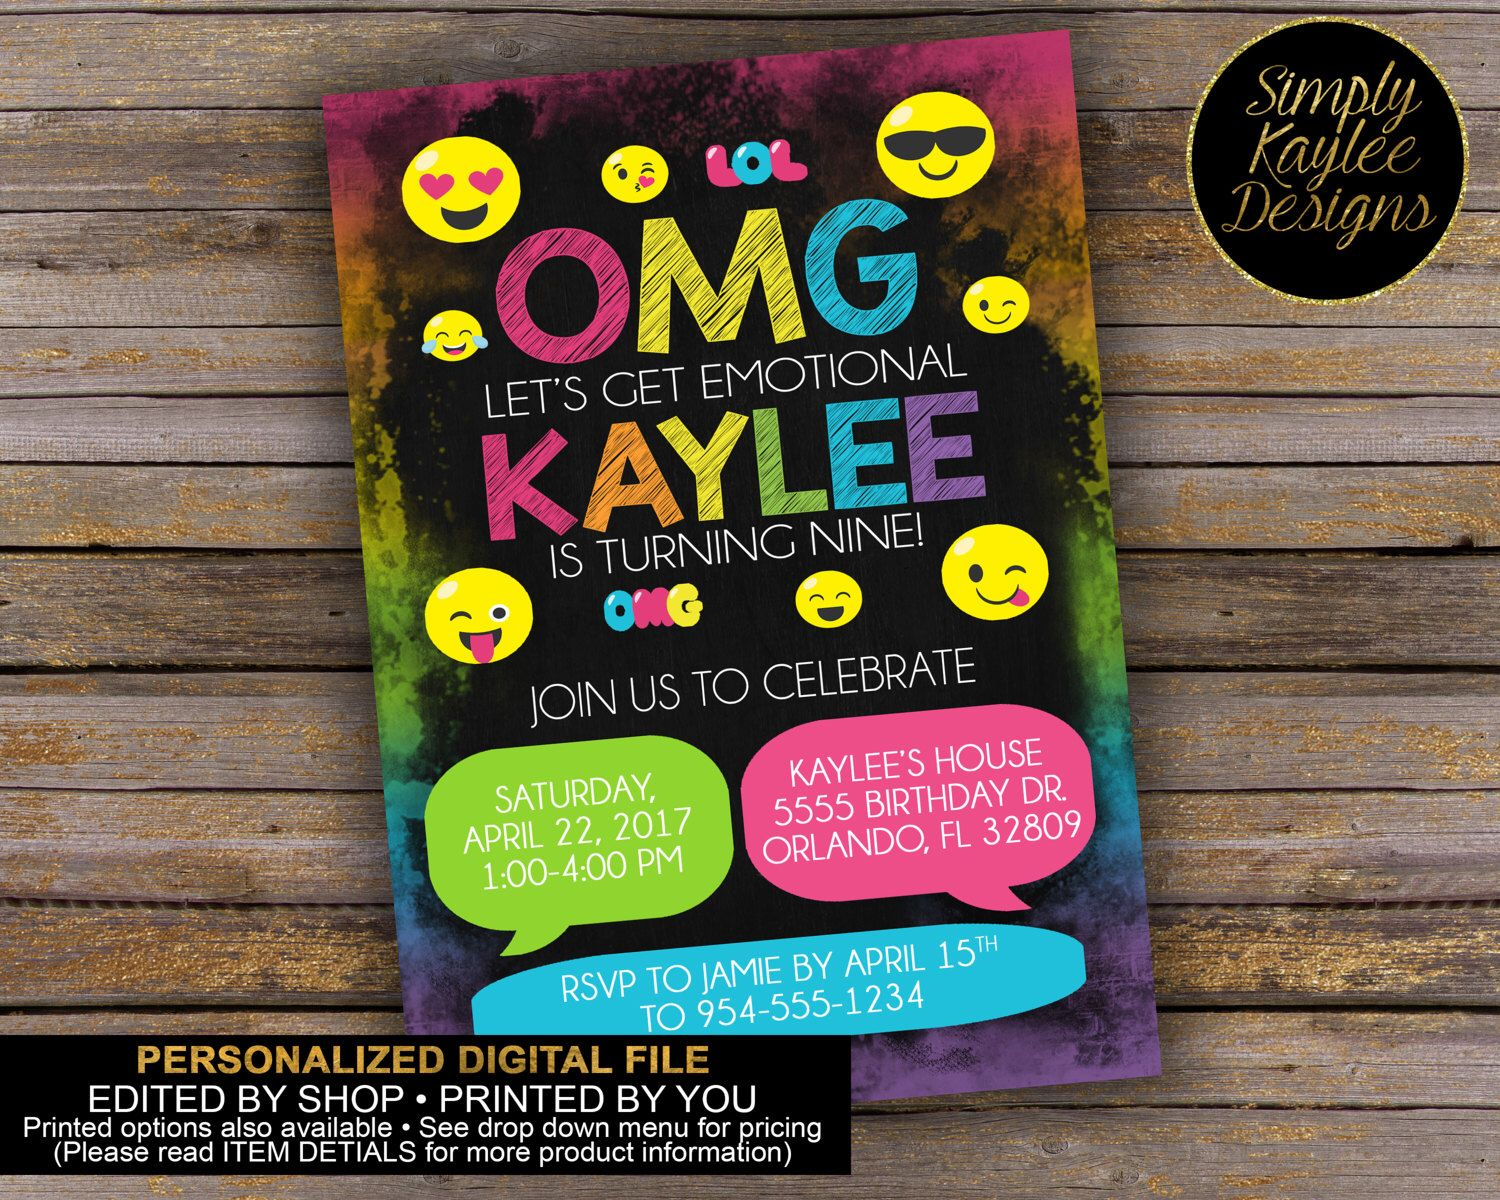 bday party invitation mail%0A Emoji Birthday Party Invitations by SimplyKayleeDesigns on Etsy  https   www etsy